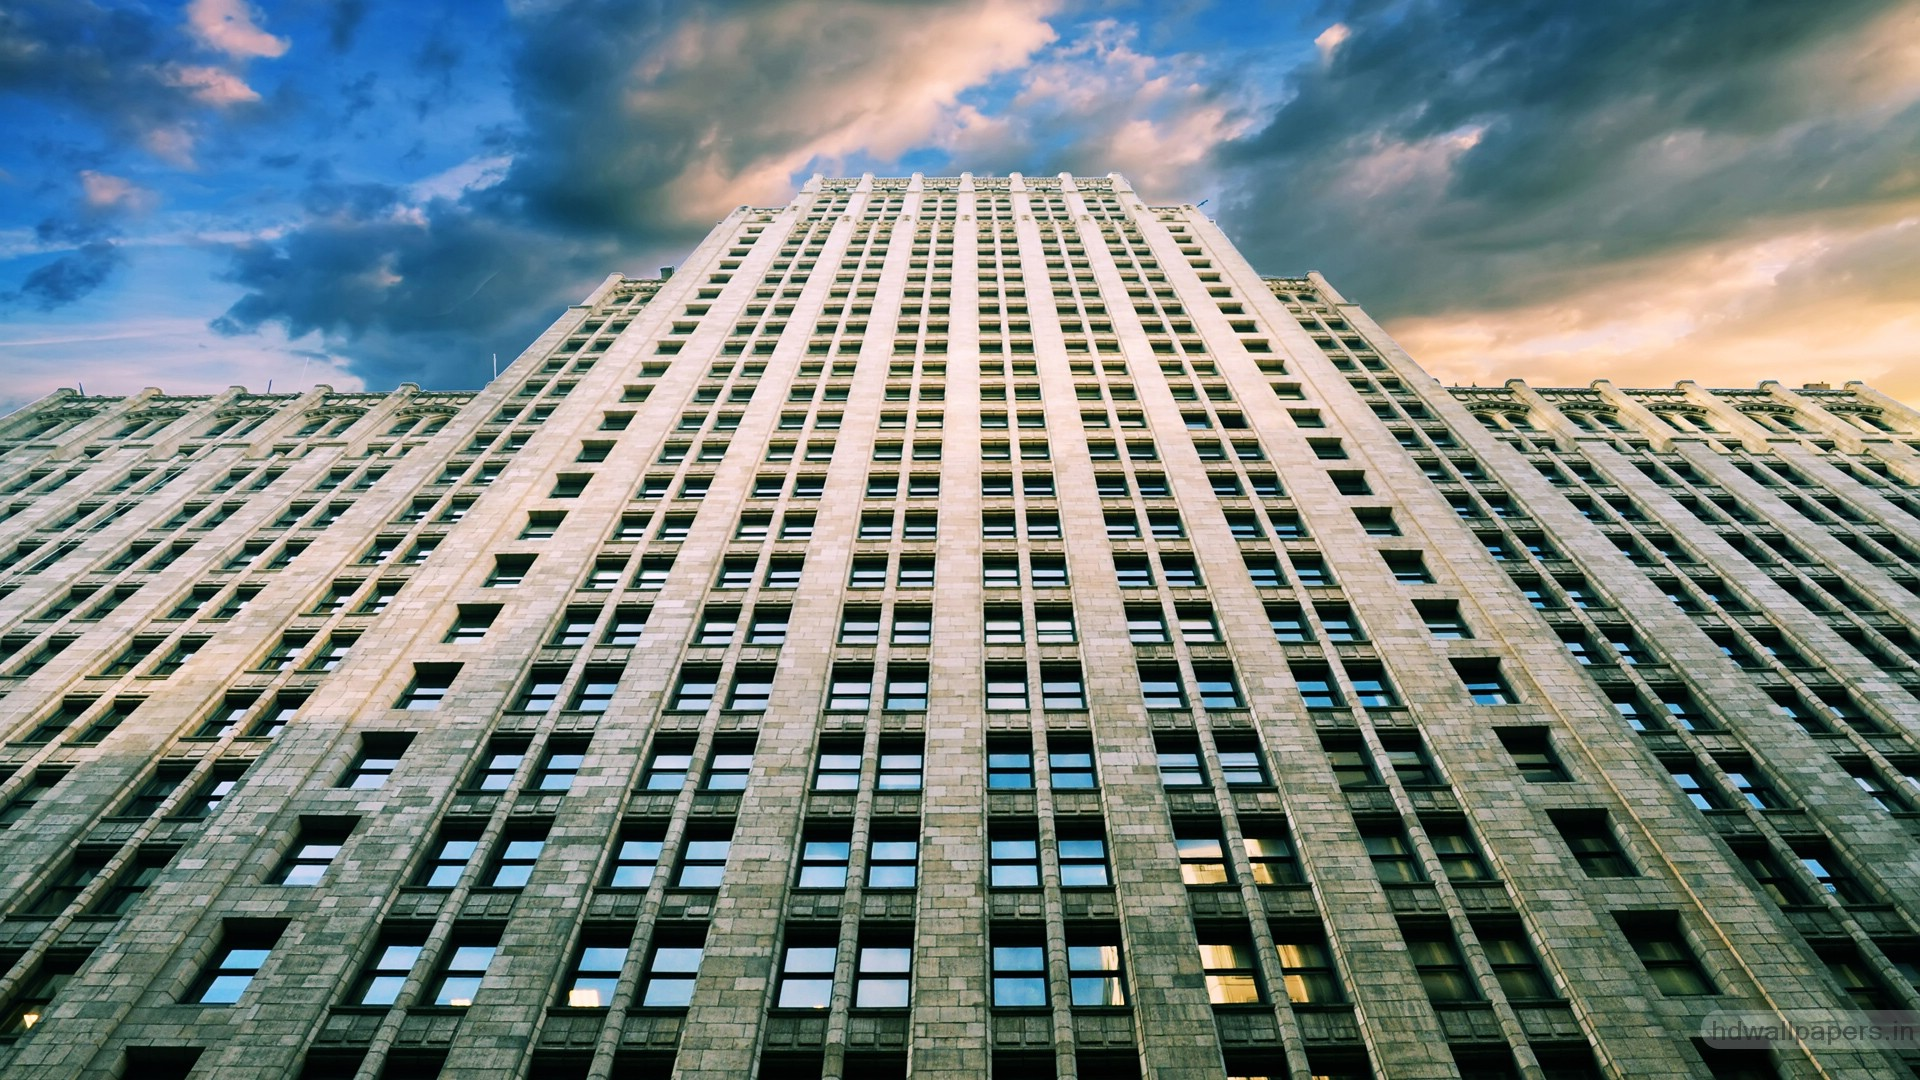 the_empire_state_building-hd